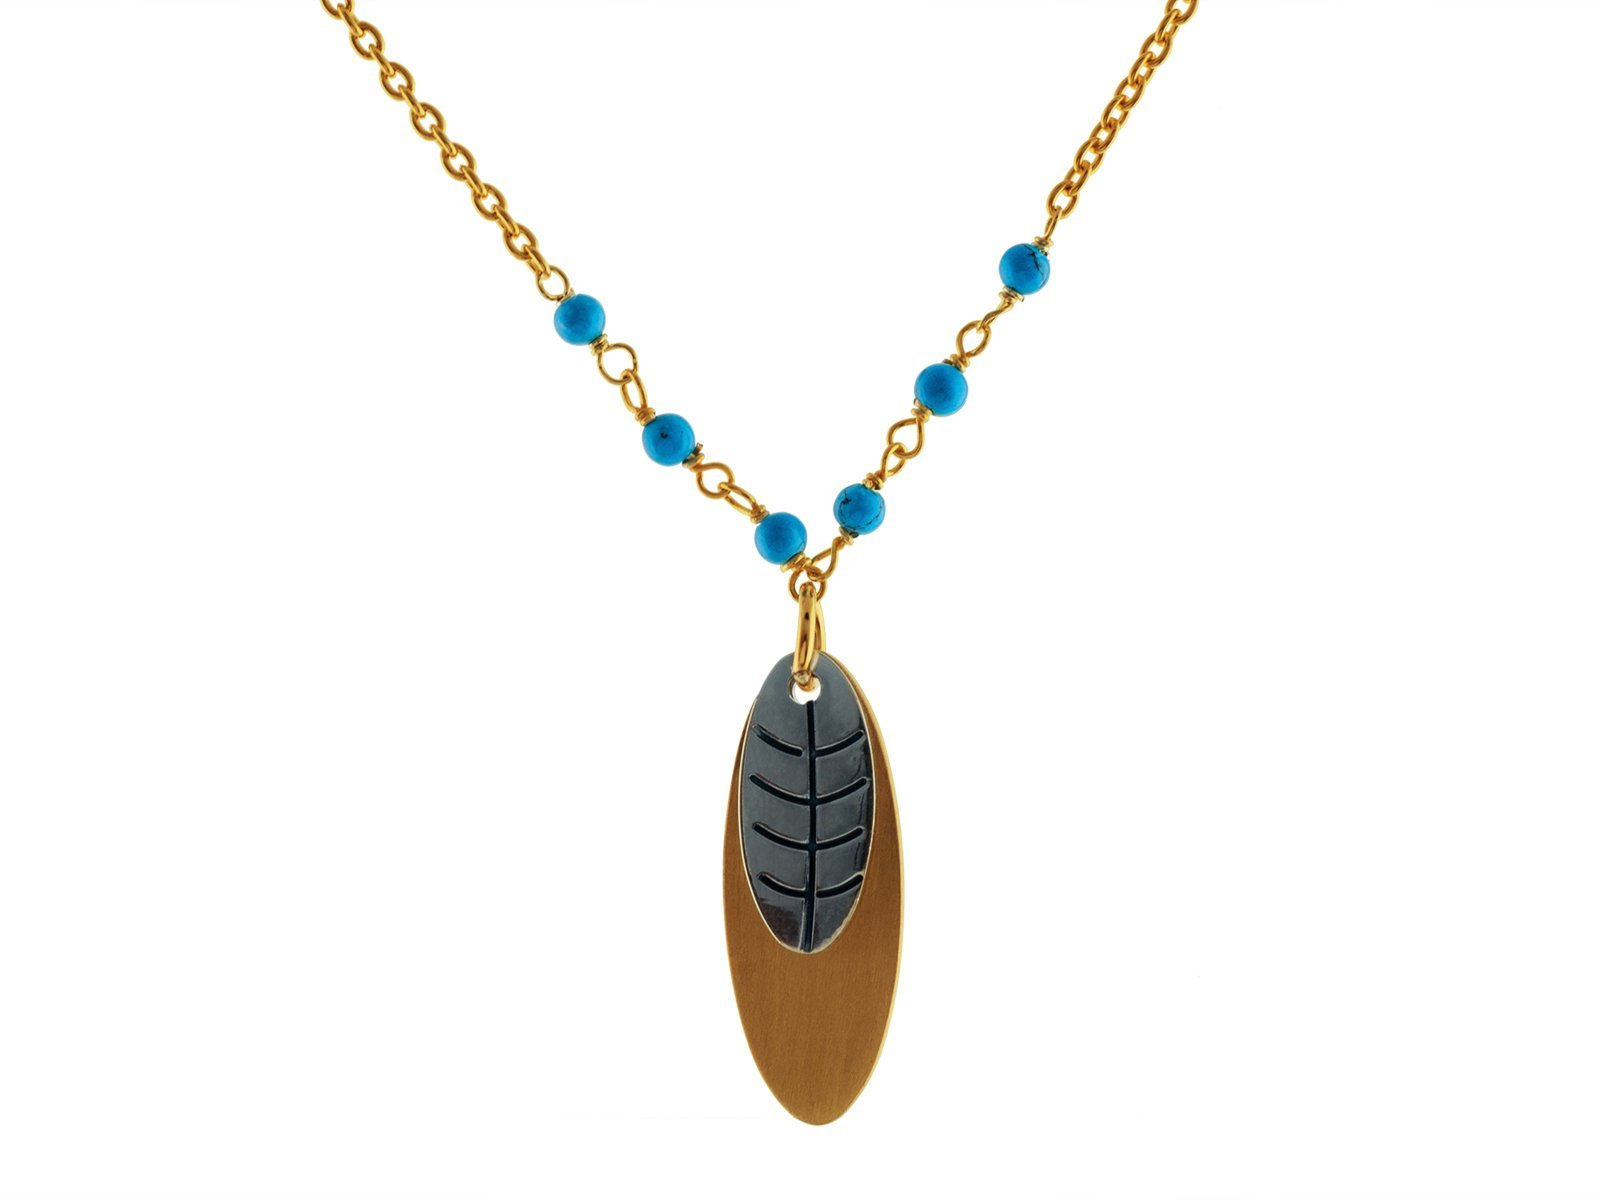 Arizona Dreams Turquoise Feather Necklace